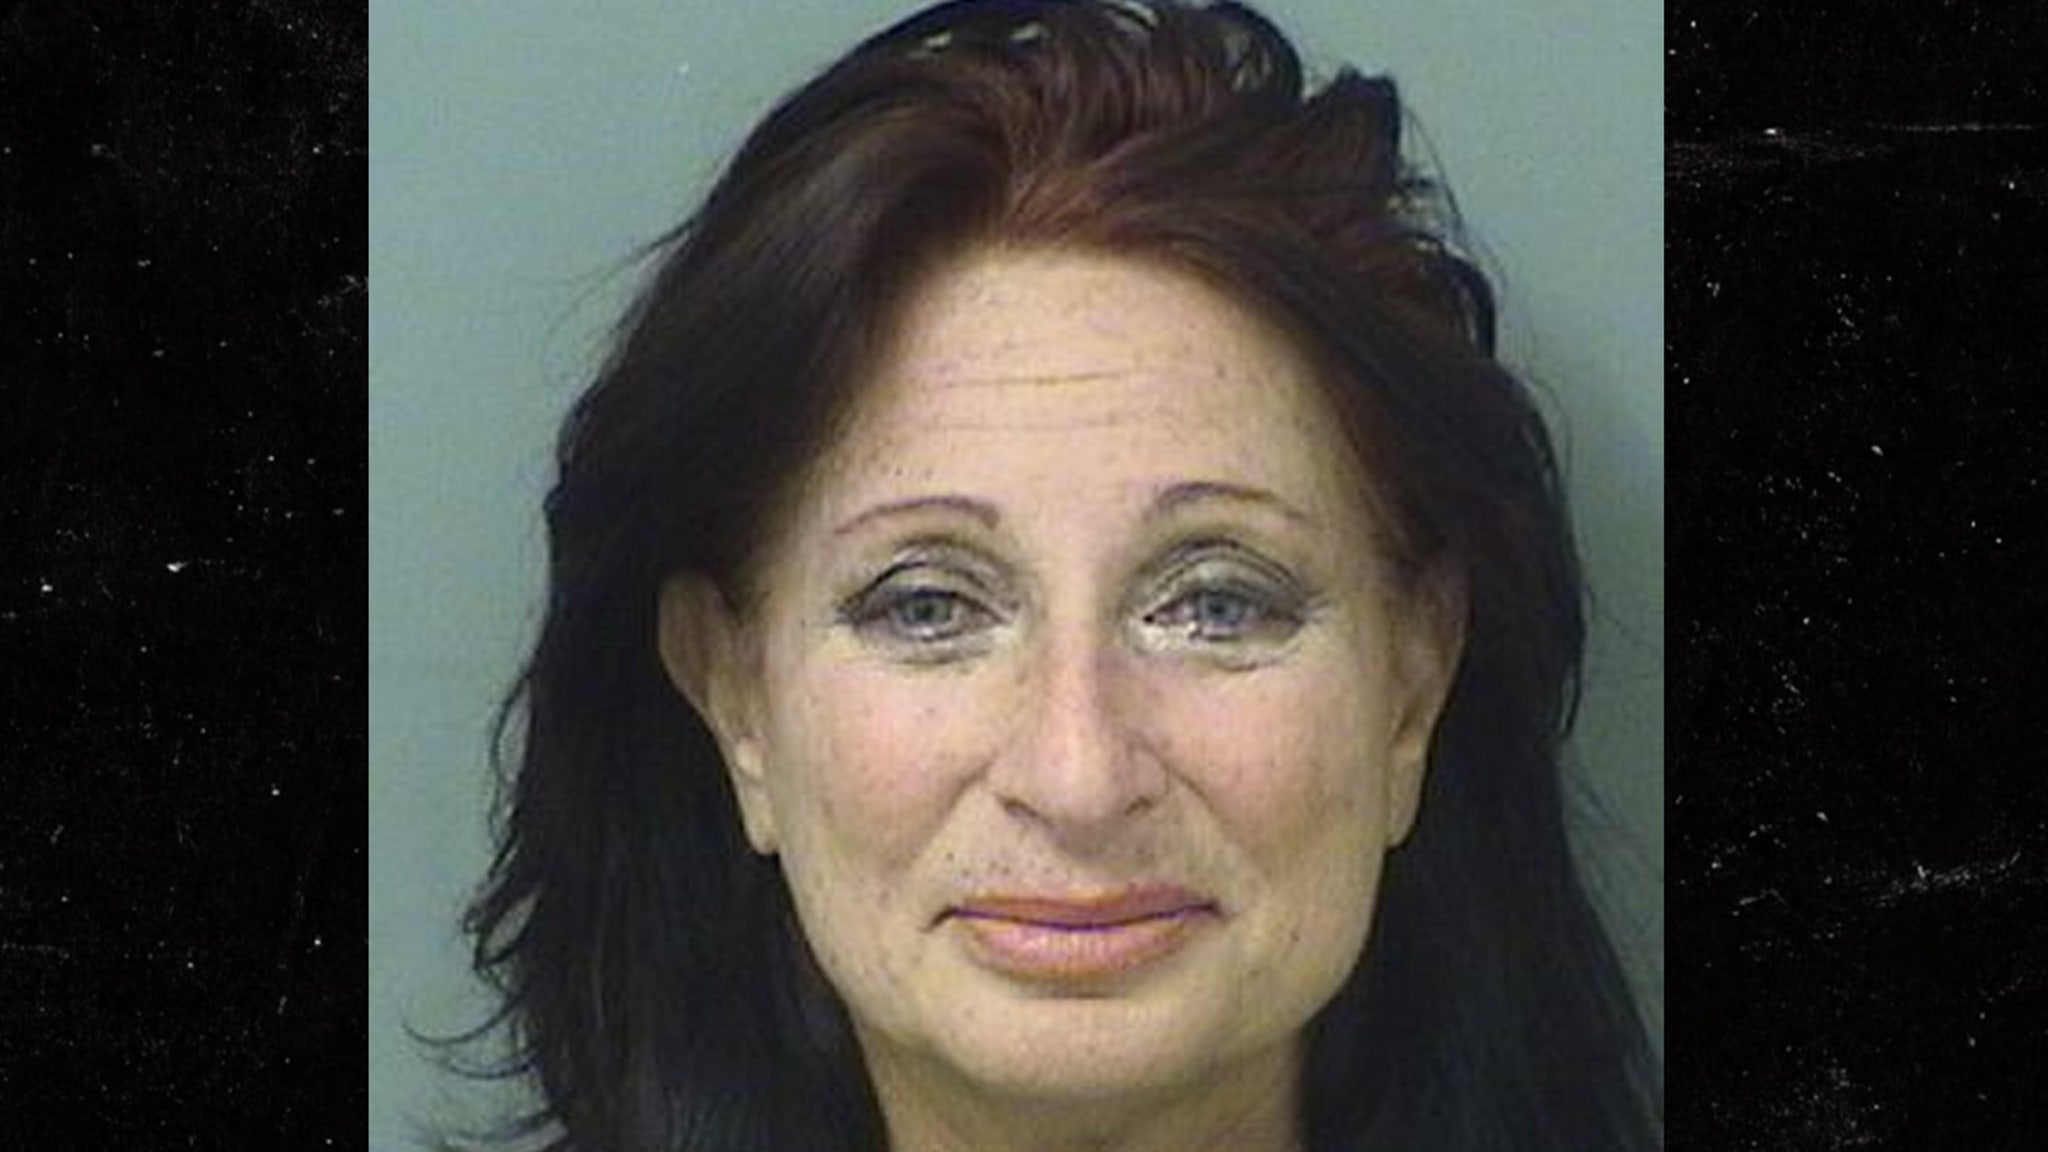 Animal Print 'Karen' Busted For Trespassing After Refusing To Wear Mask 'You're Violating My Personhood!!!'